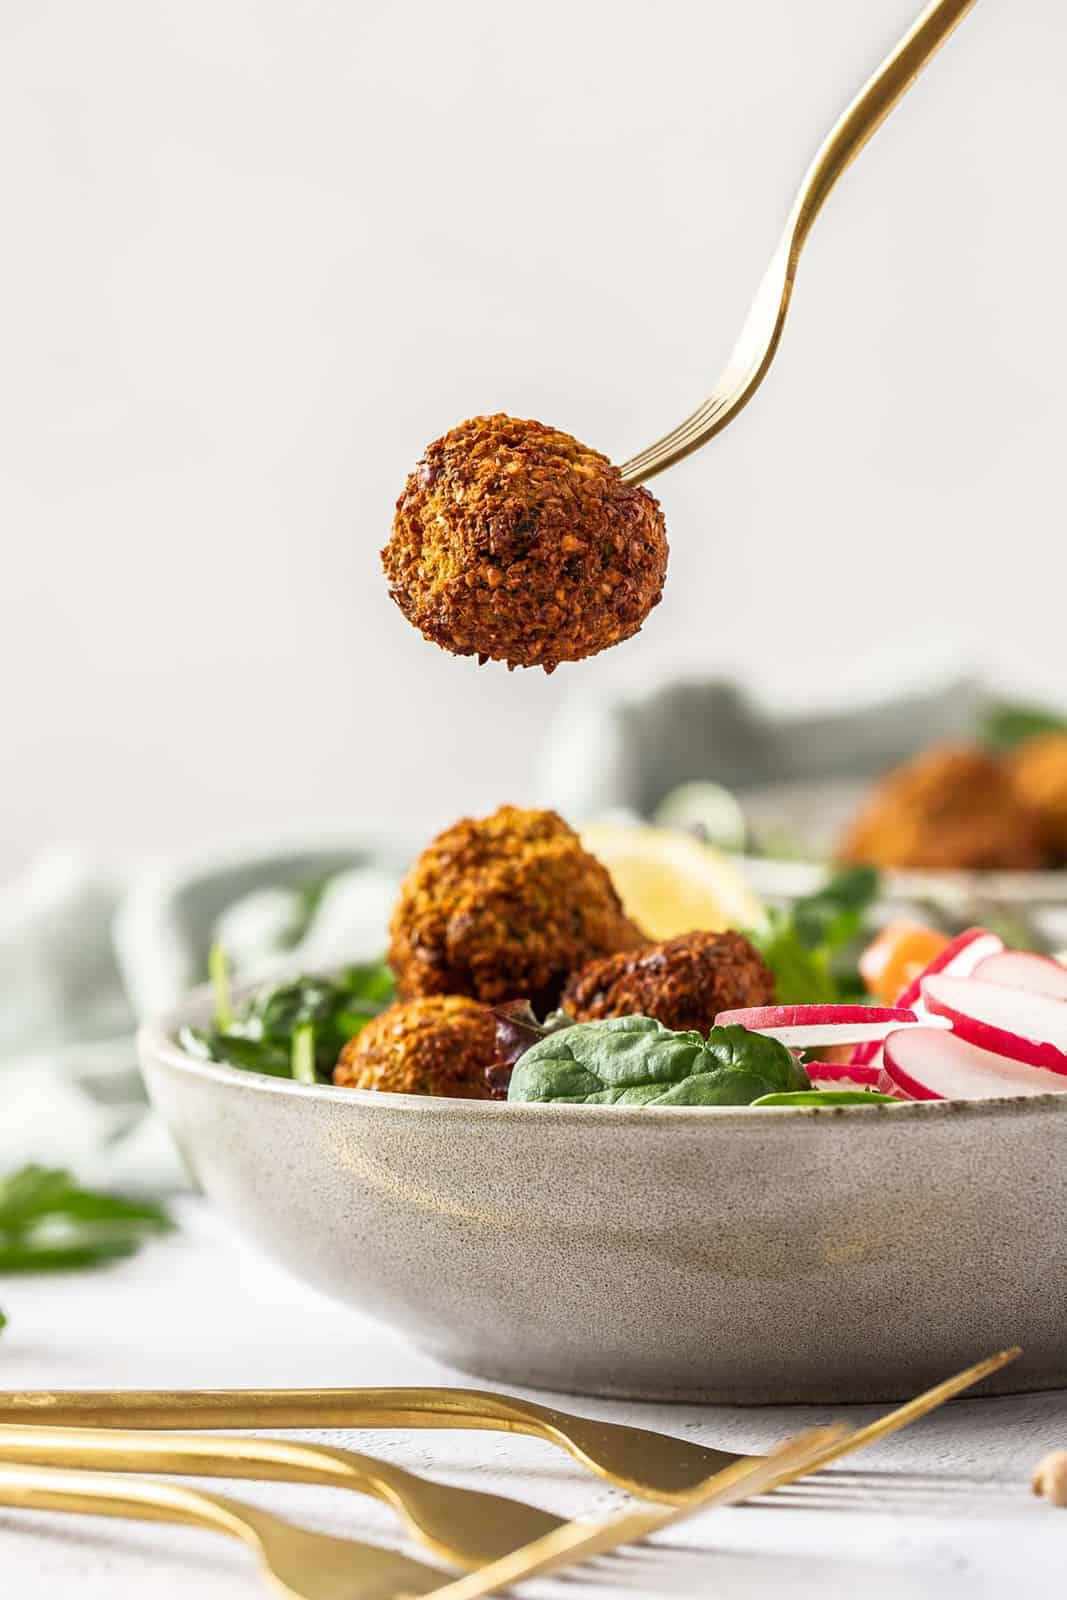 a falafel ball on a gold fork being held over a bowl of salad